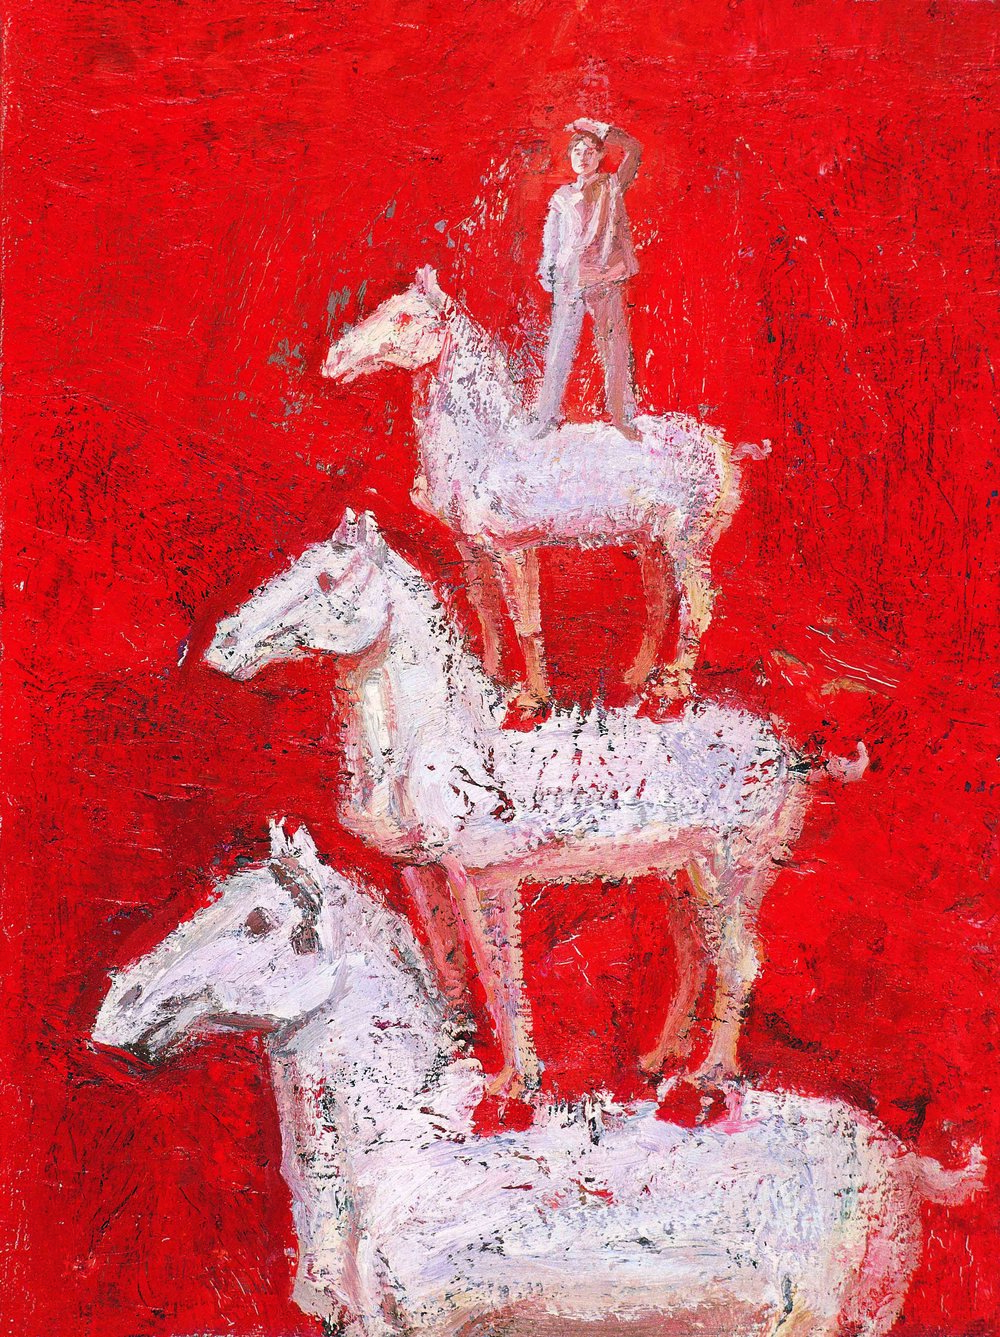 Gao Xiang, Horse Pagoda, 2010, oil and acrylic on canvas, 61cm x 46cm